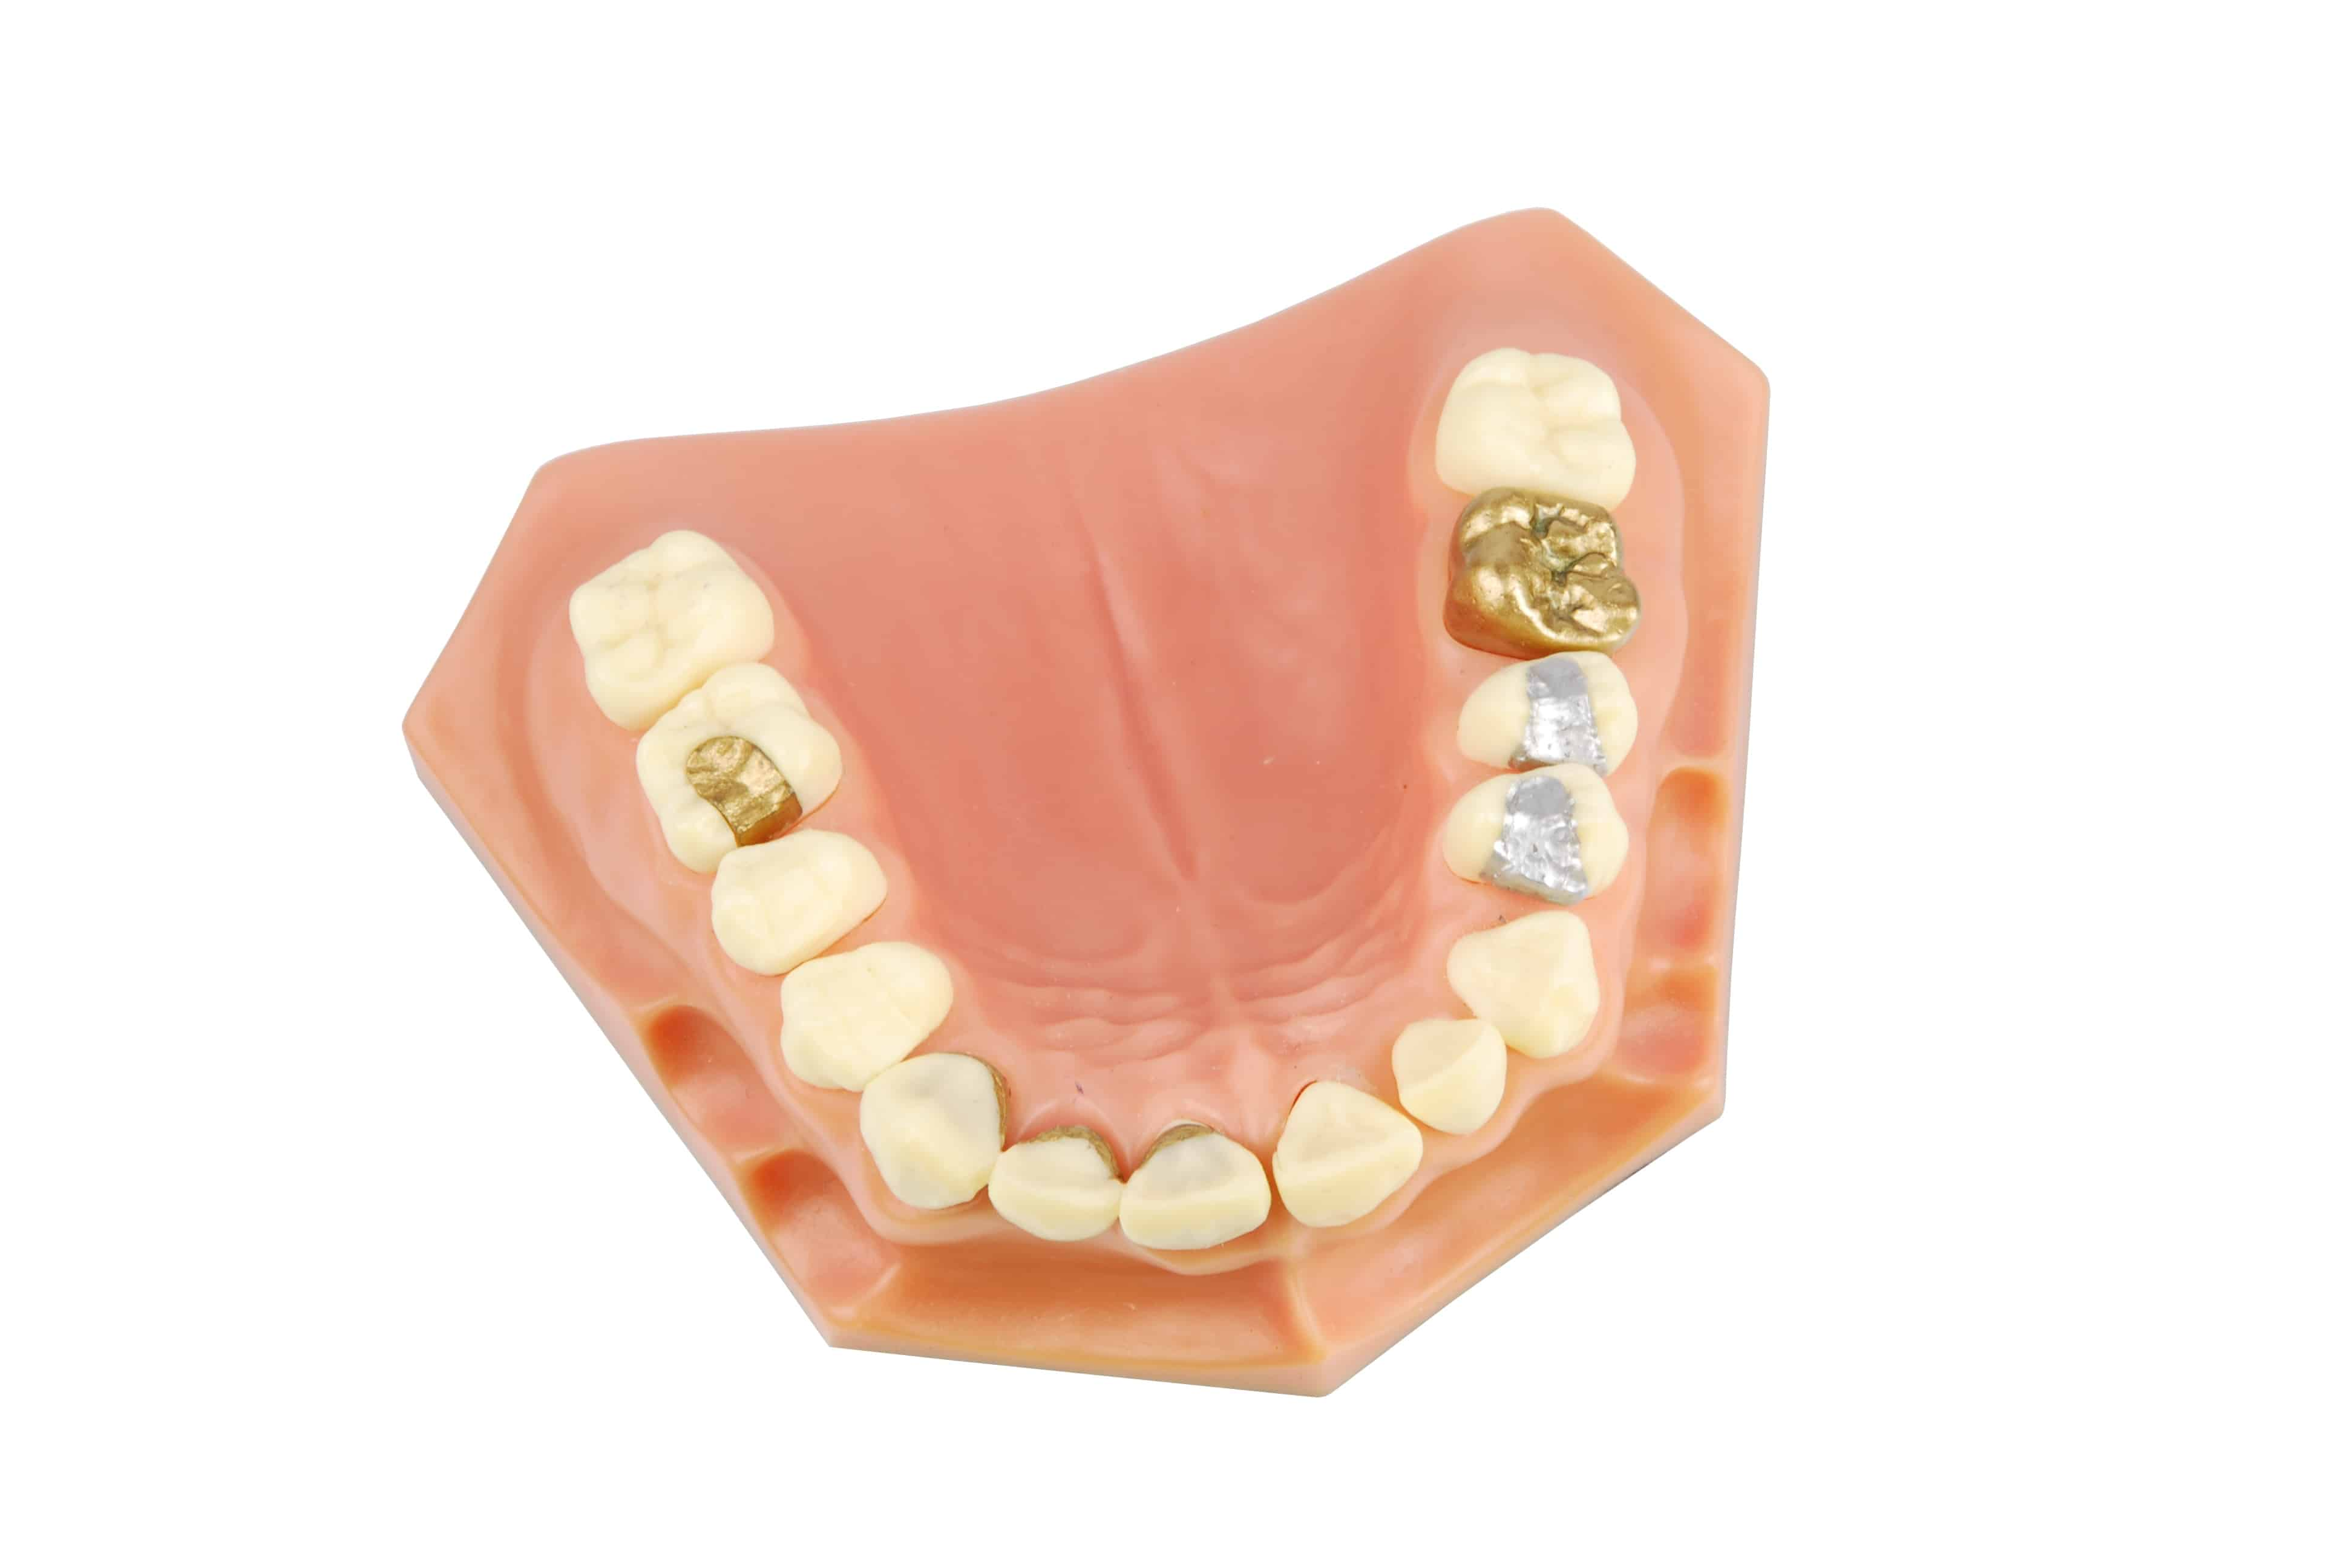 dental model showing different types of treatments (gold crown, porcelain veener, gold inlays, amalgam and composite fillings)